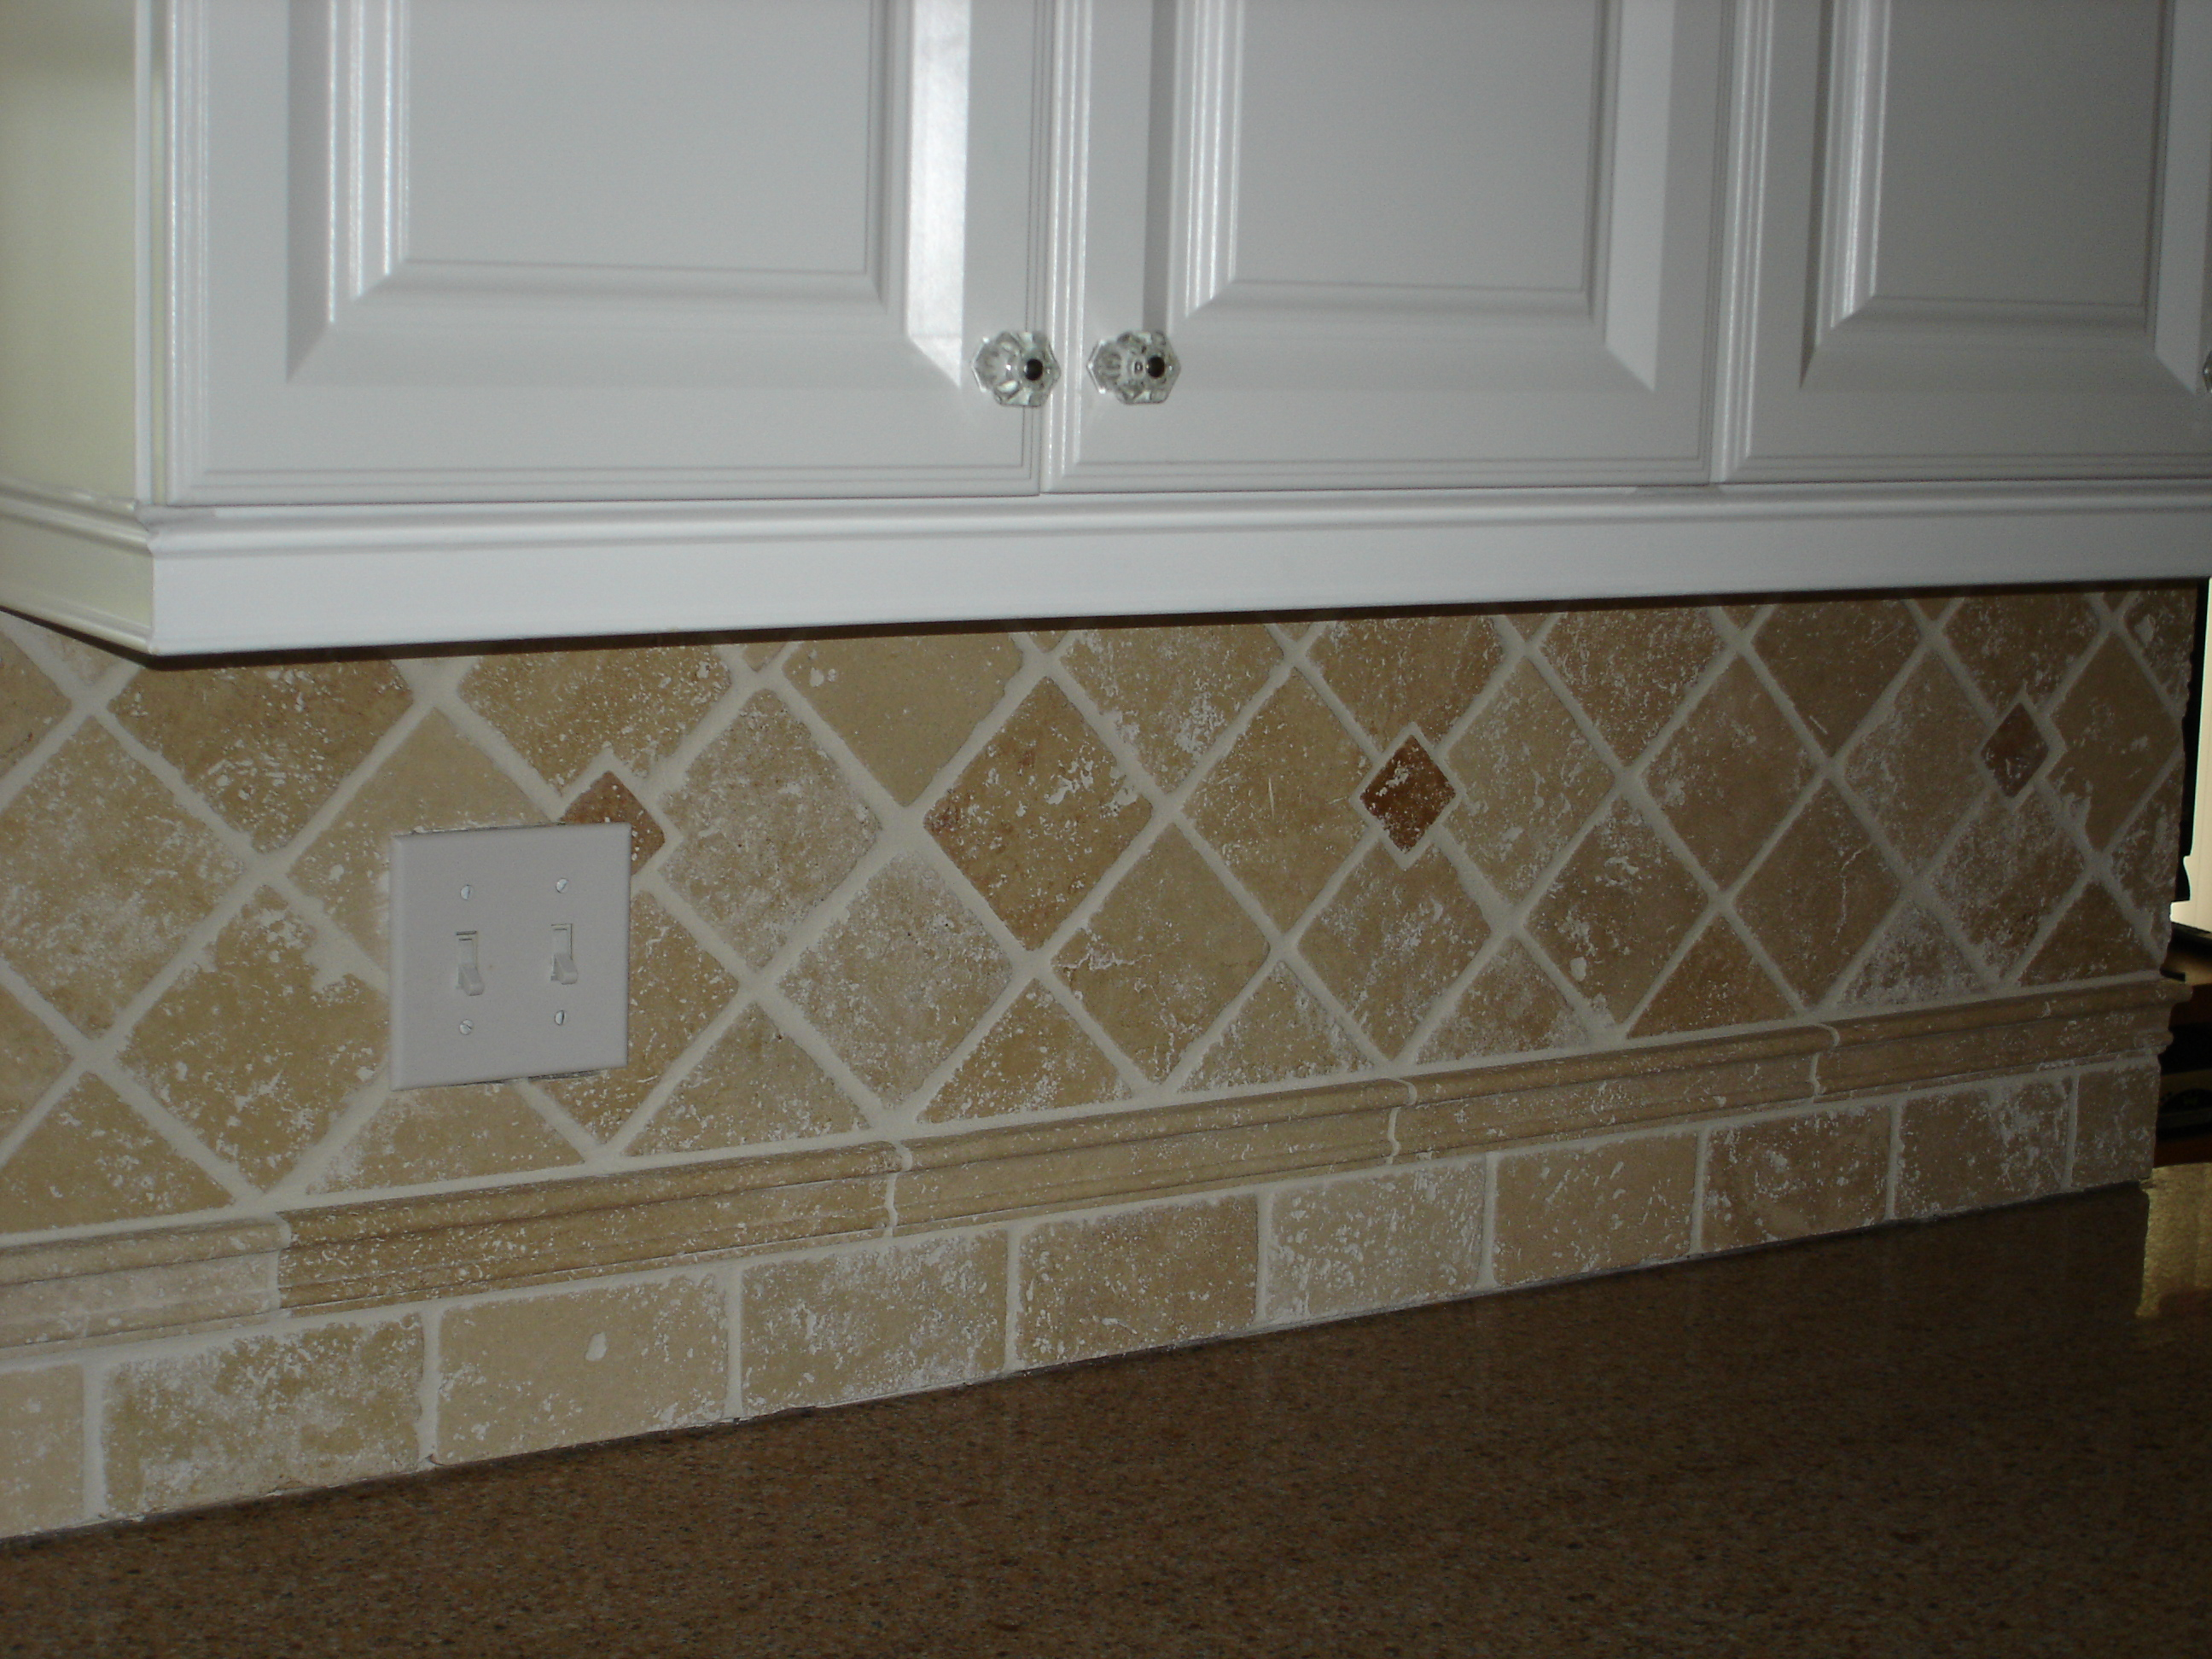 Tile backsplashe central nj jackson freehold colts neck for Kitchen backsplash design gallery